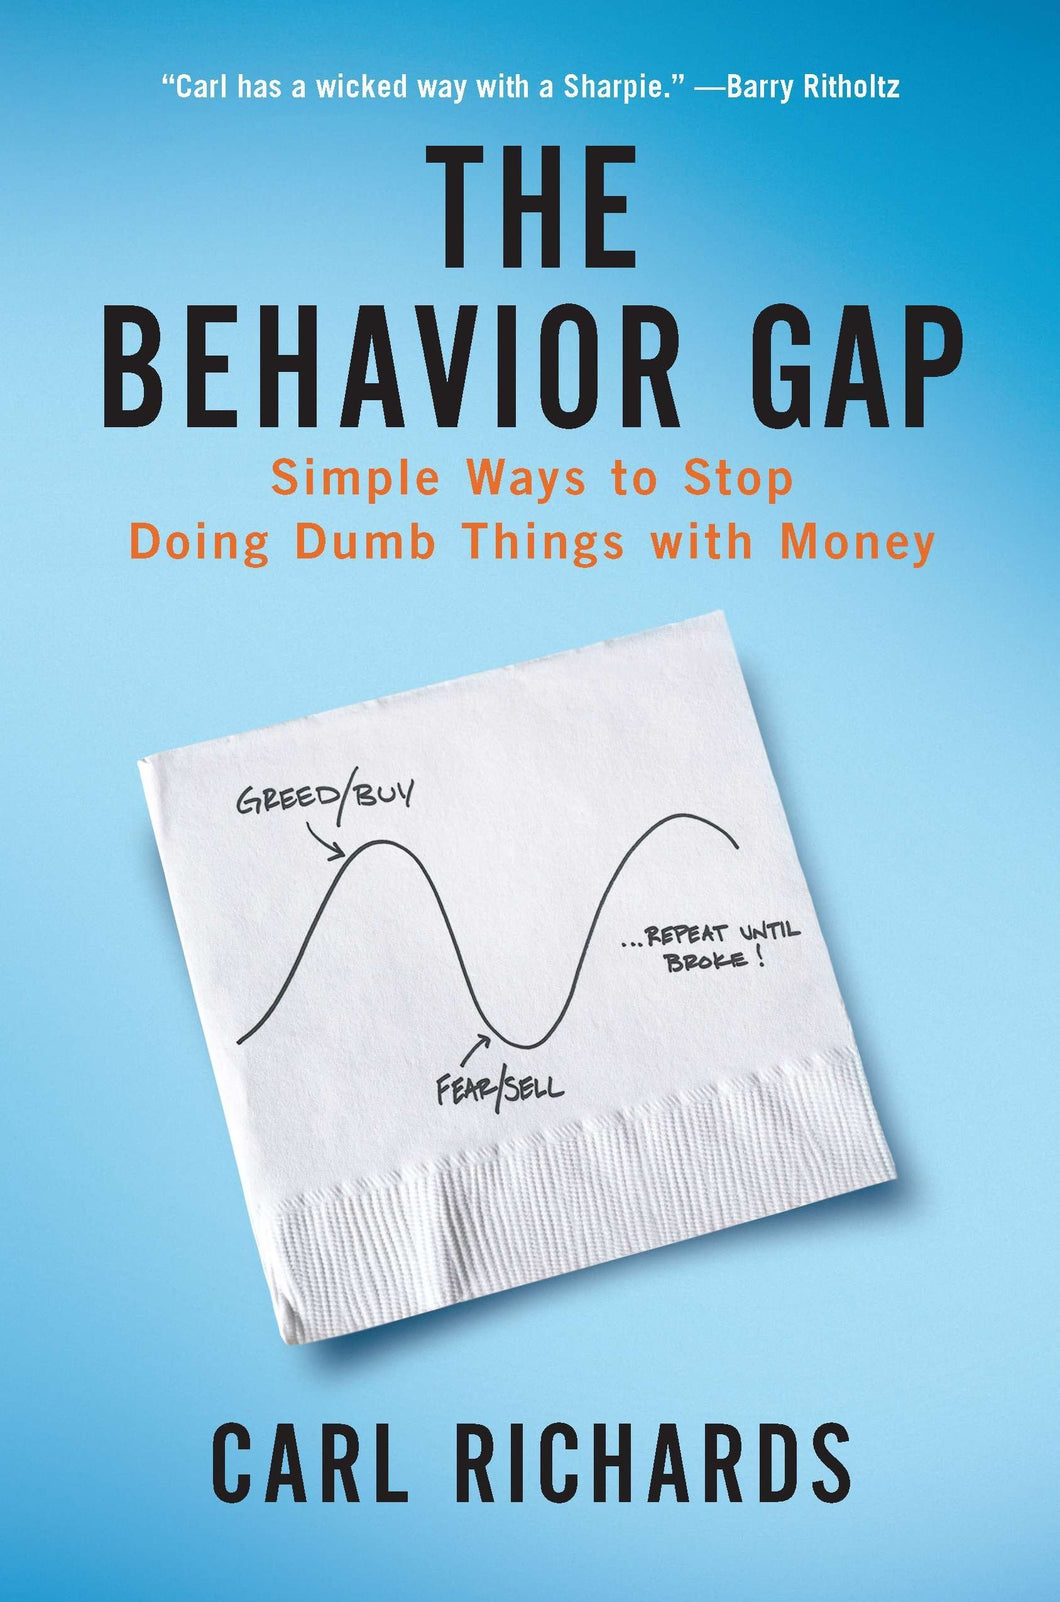 Signed copy of The Behavior Gap